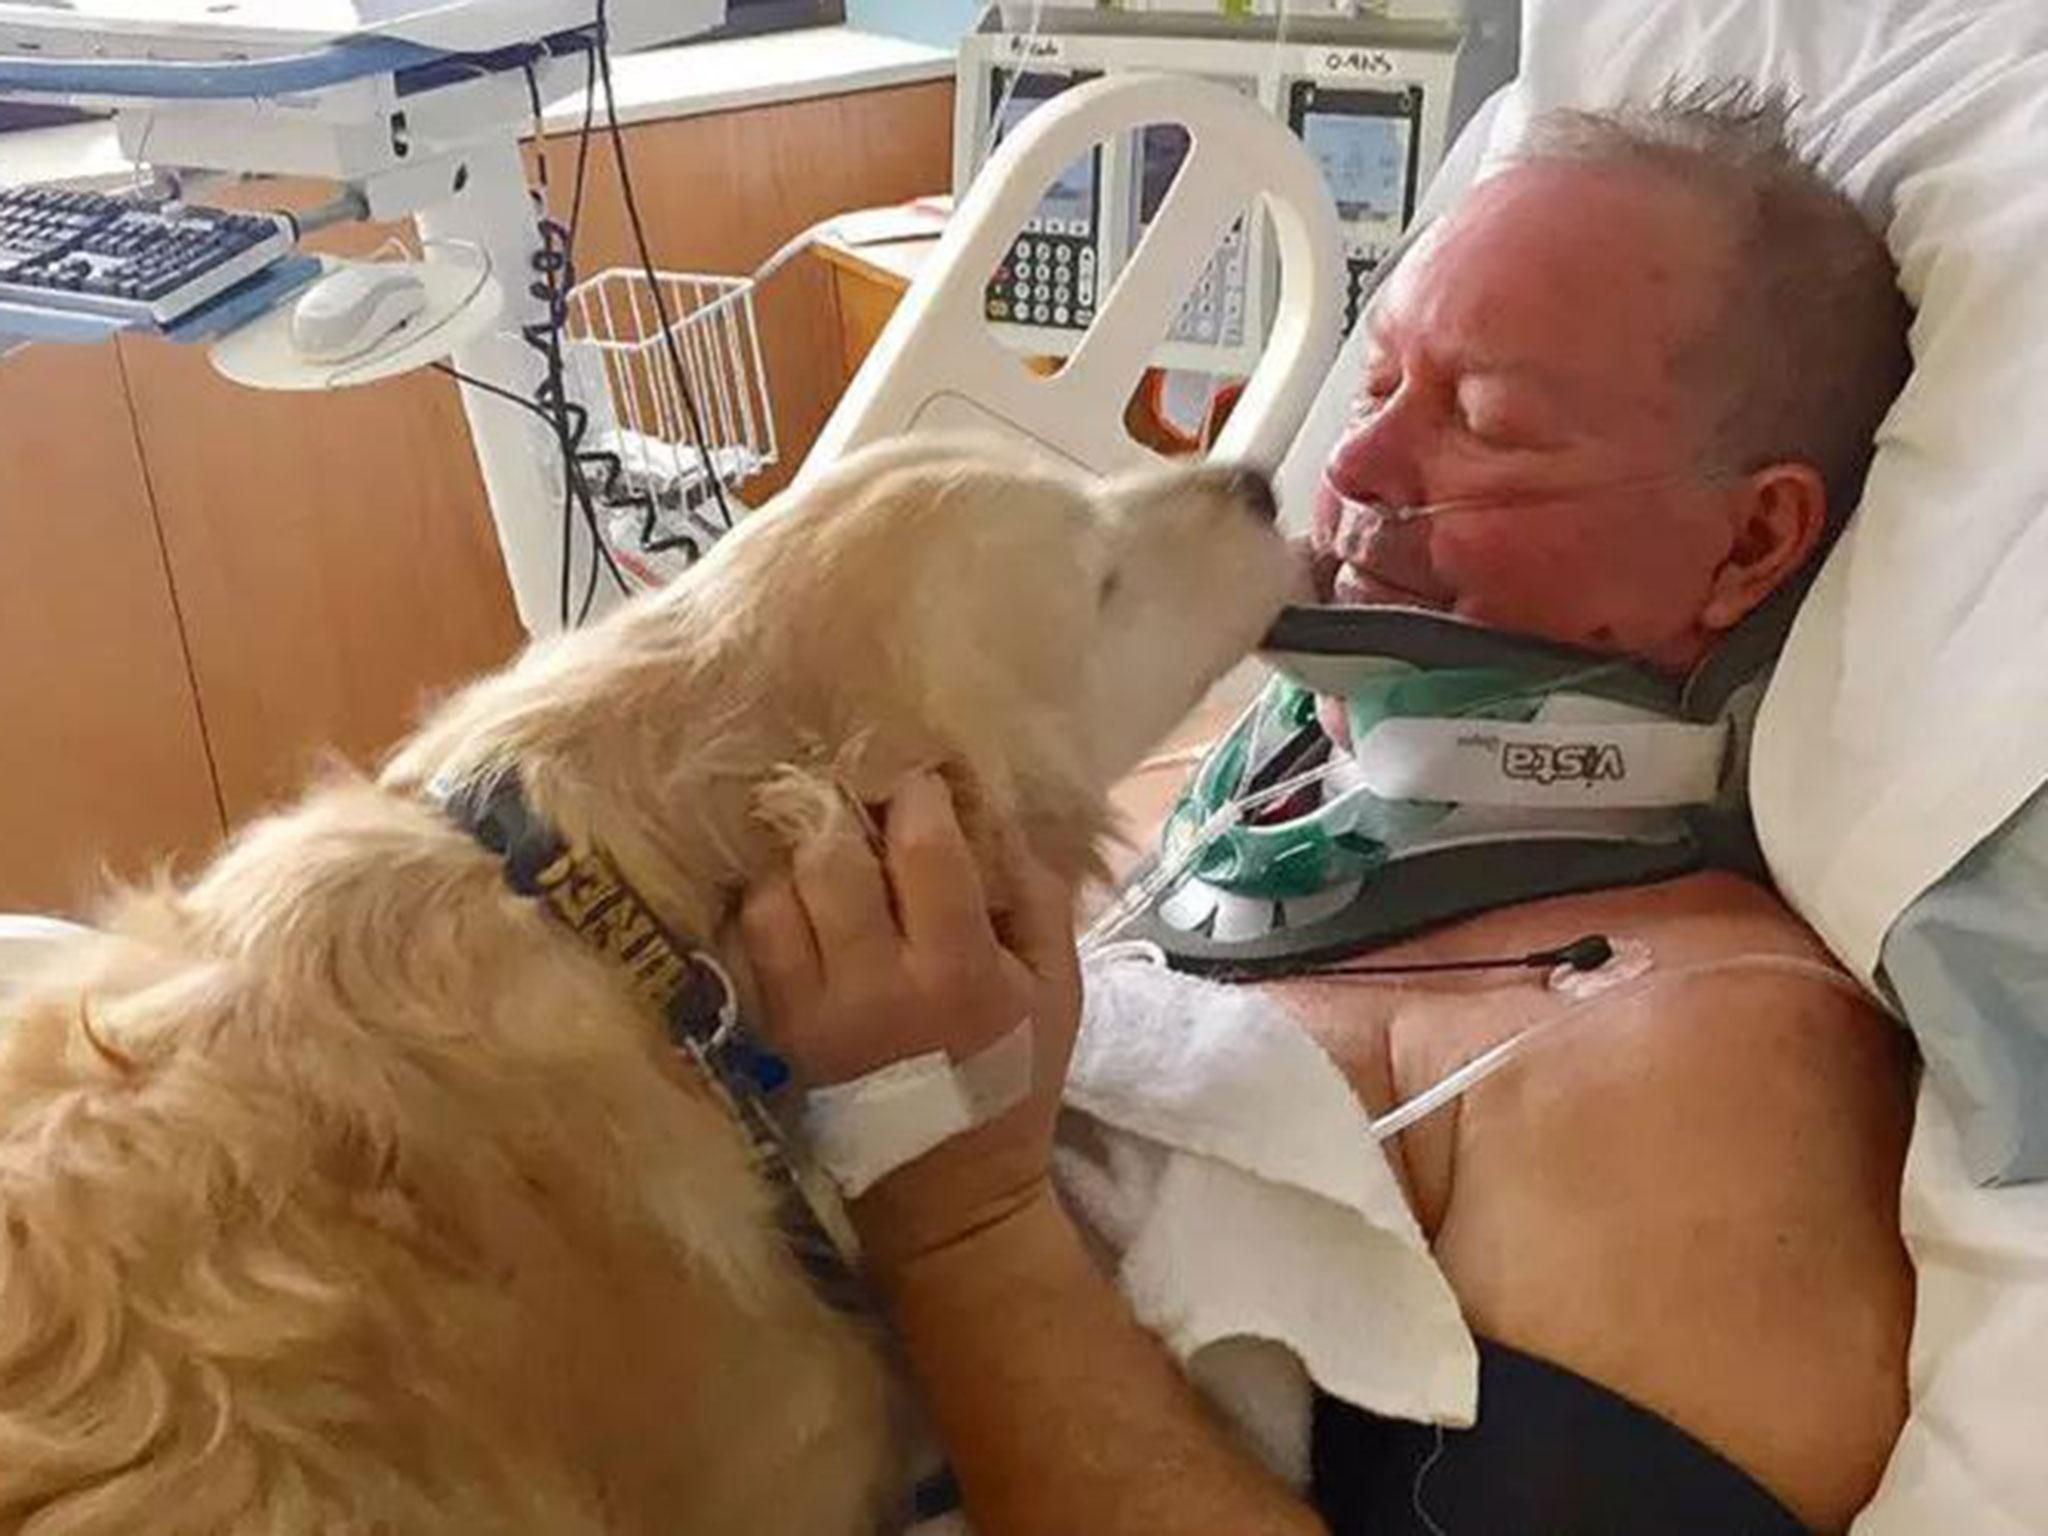 Dog Saves Owner S Life By Lying On Him For Nearly 24 Hours In Freezing Conditions With Images Dog Help Dogs Cute Puppy Videos